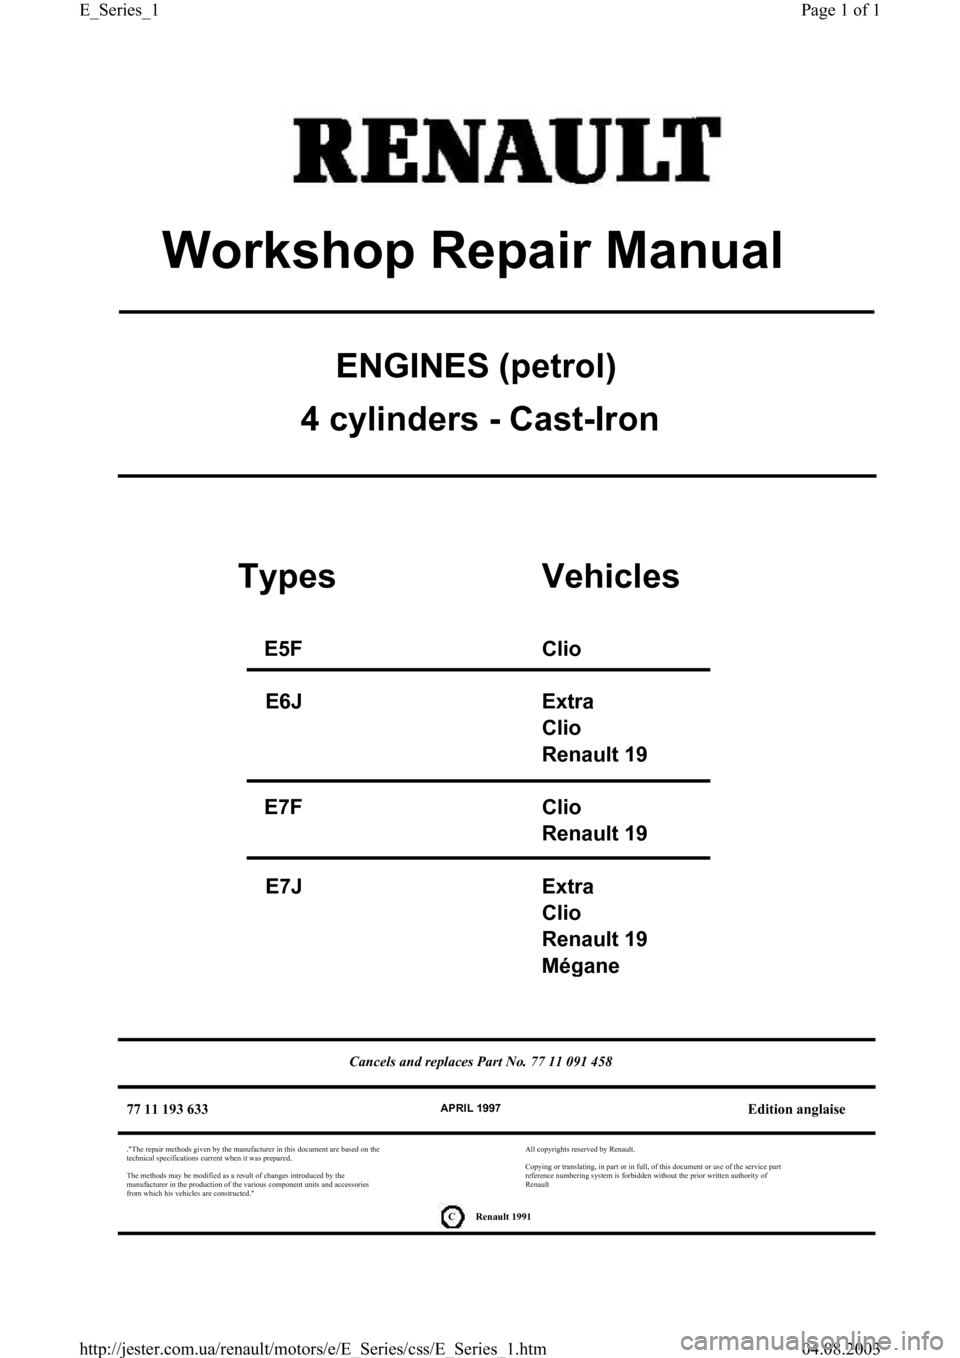 RENAULT CLIO 1997 X57 / 1.G Petrol Engines Workshop Manual, Page 1